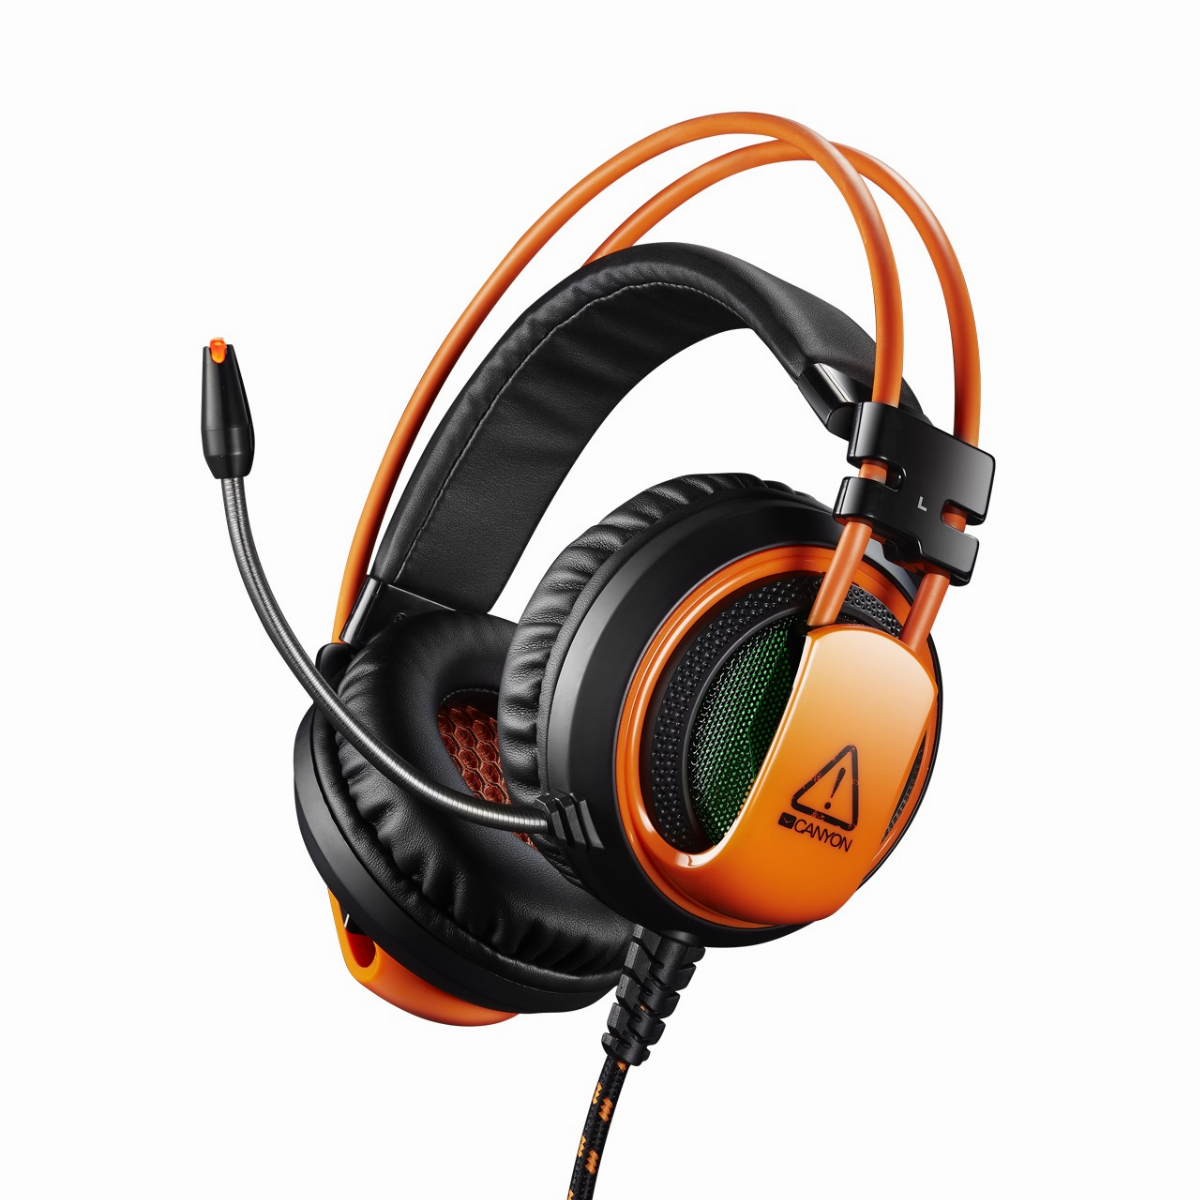 Геймърски слушалки CANYON Corax CND-SGHS5A Gaming headset 3.5mm jack plus USB